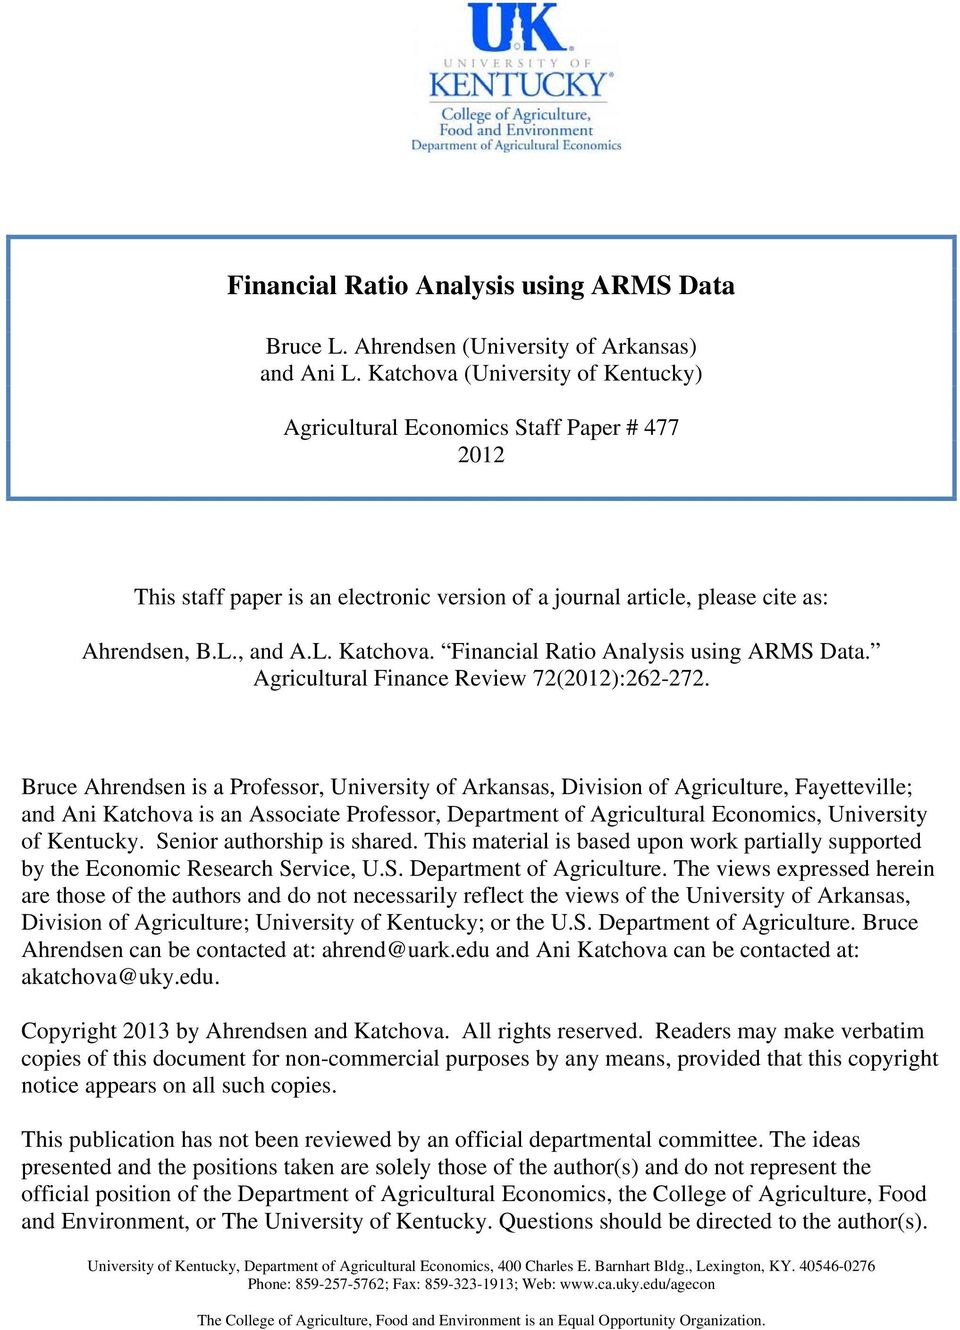 Financial Ratio Analysis using ARMS Data. Agricultural Finance Review 72(2012):262-272.